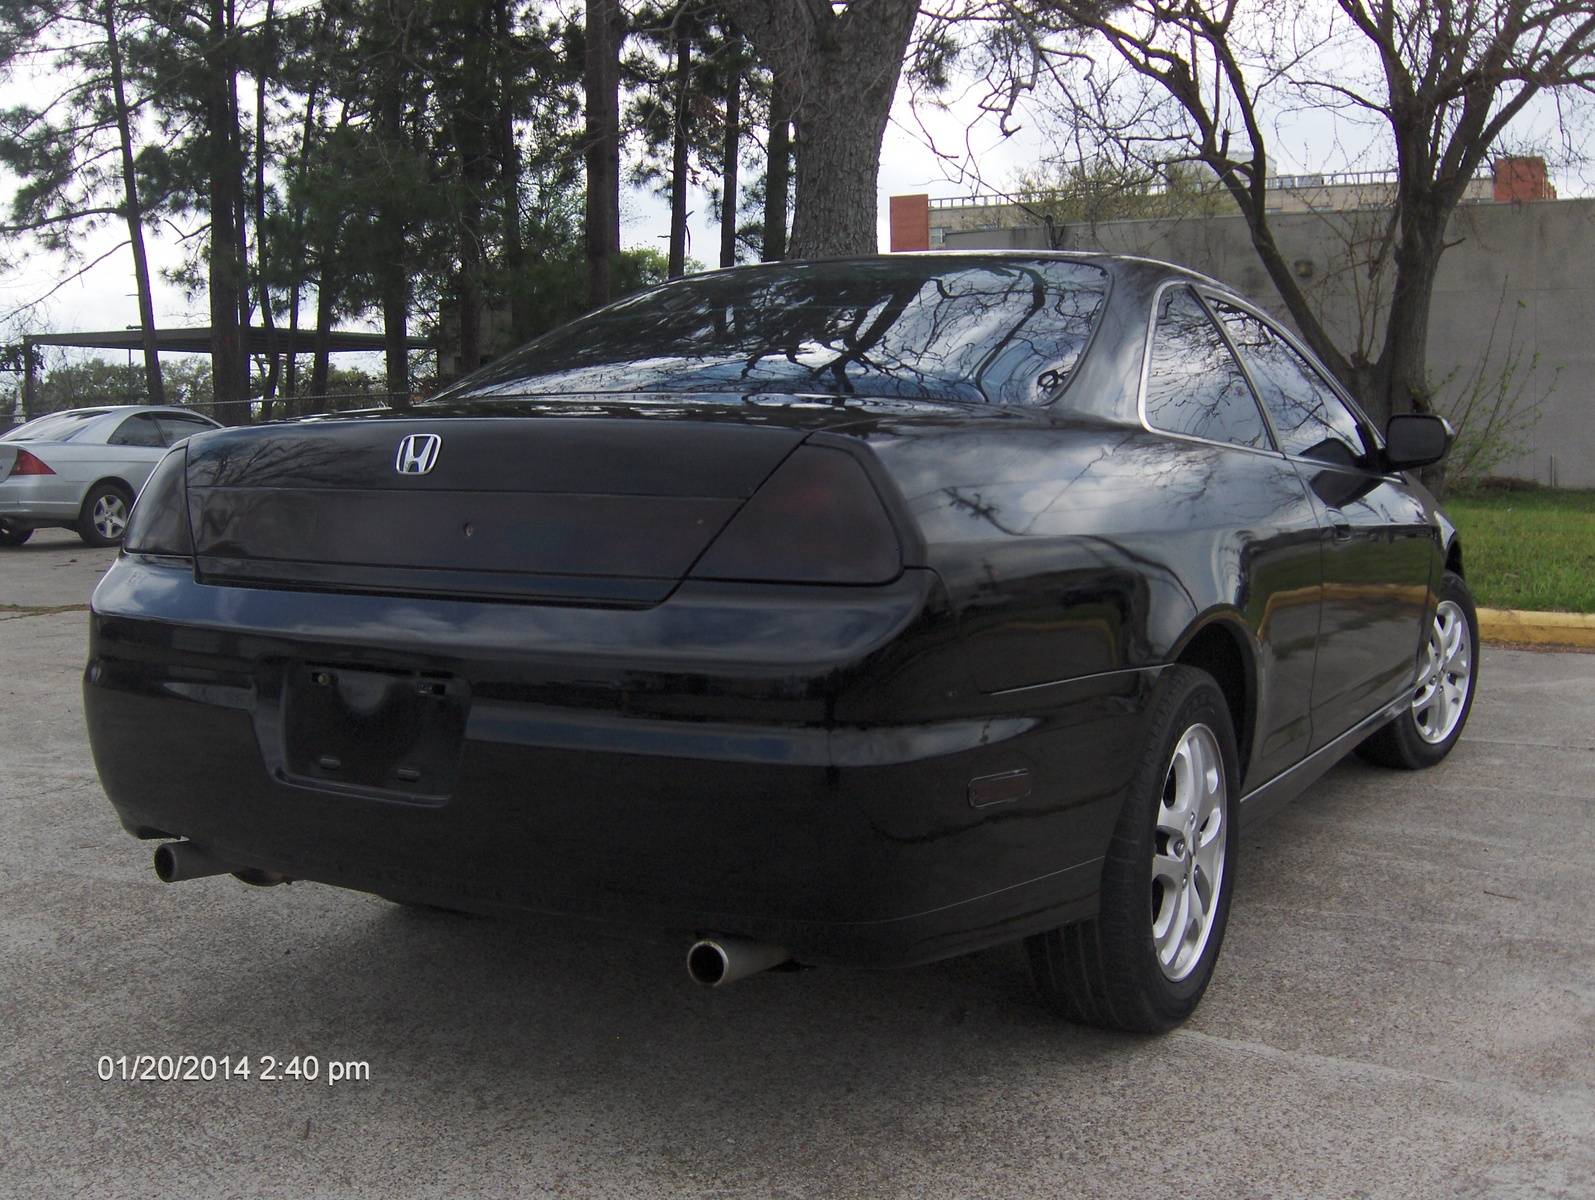 Honda Accord 3.0 2001 photo - 11